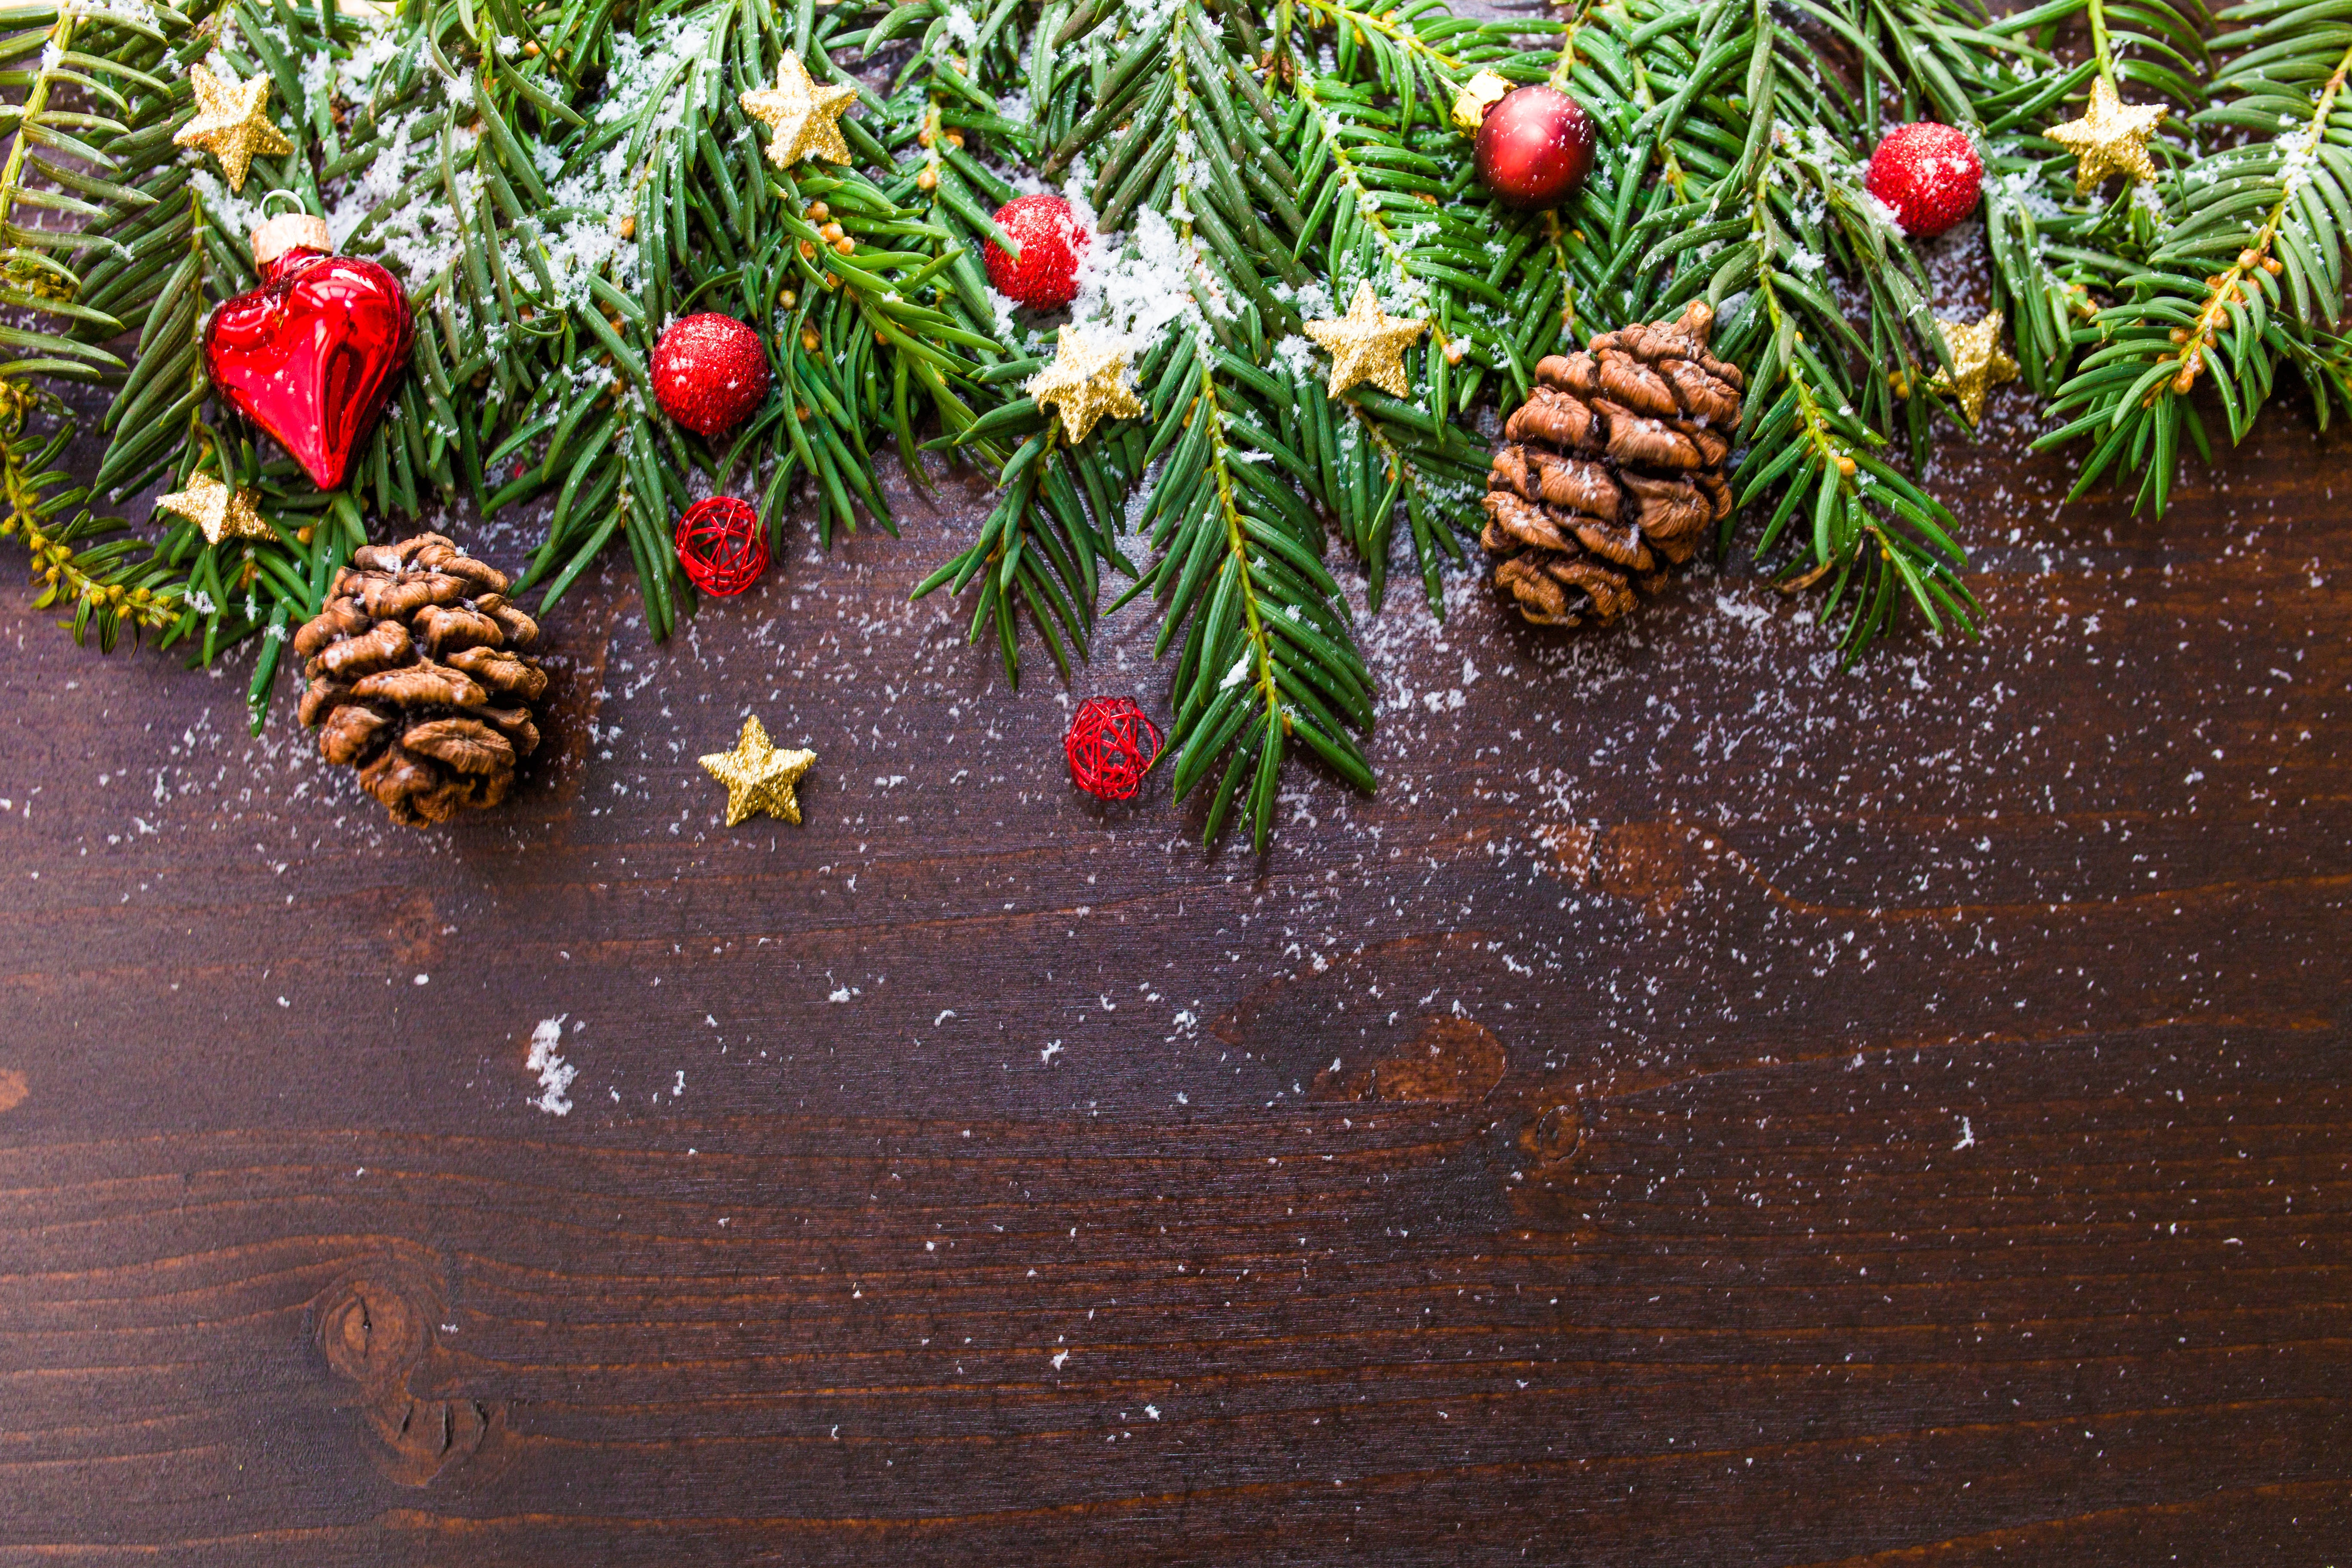 Choose From Our Professional Christmas Images Including Decorations Snow Presents Or Seasonal Backgrounds Also Search For Winter And Snow Photos To Find